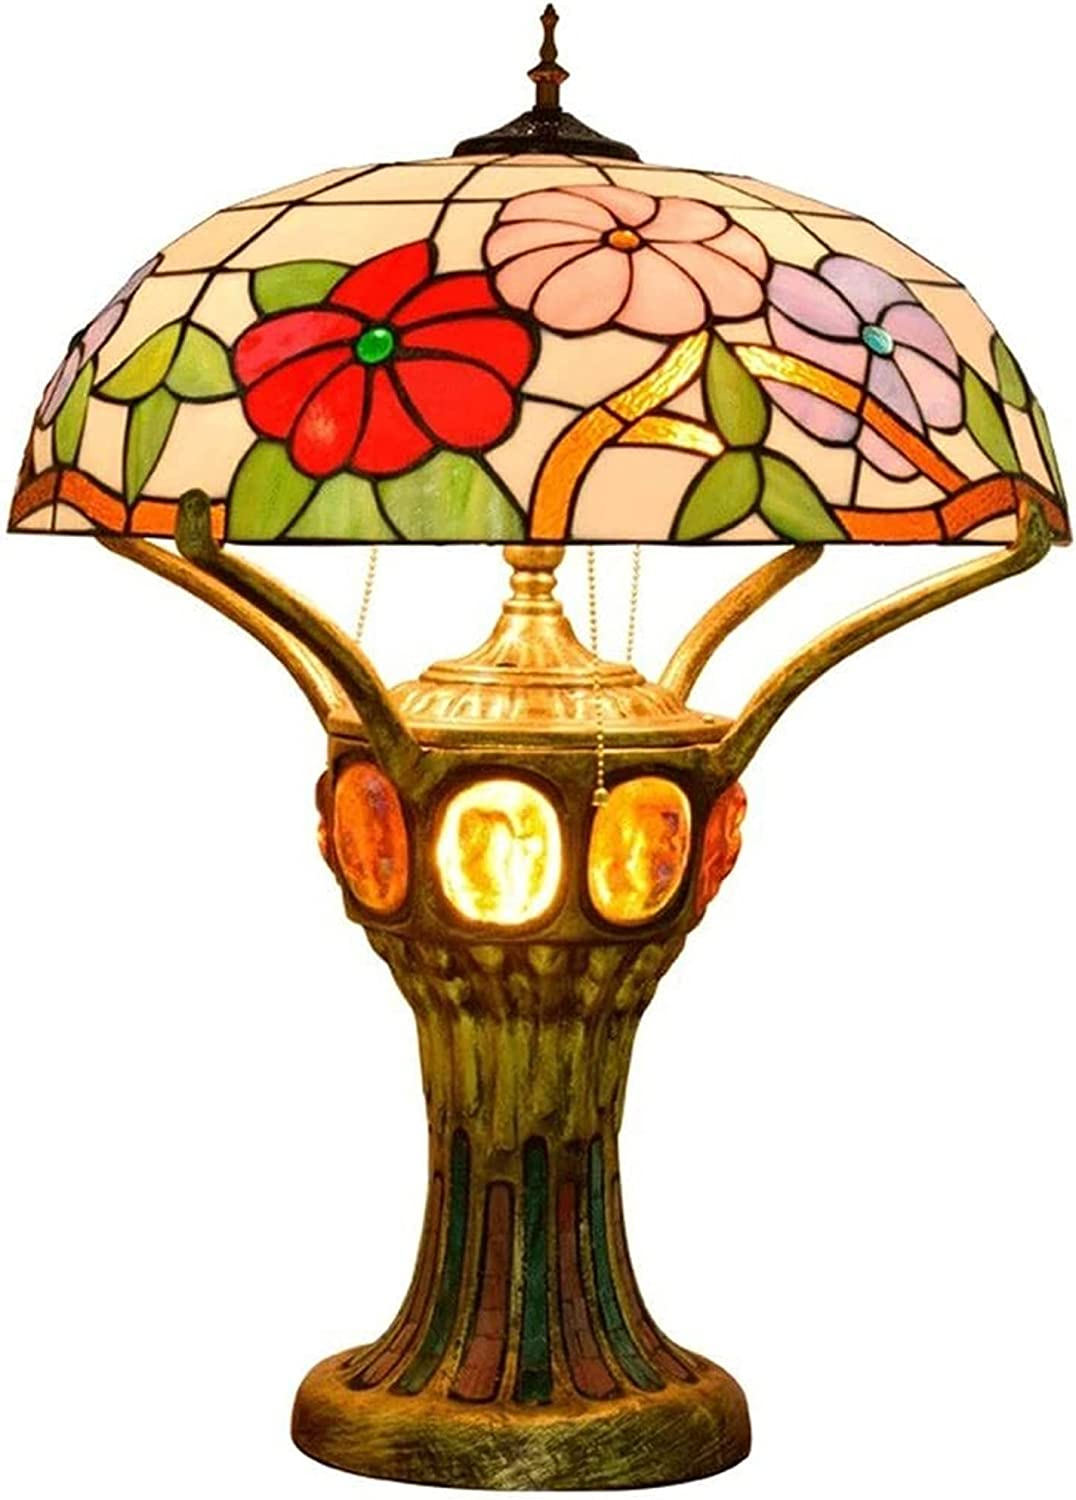 YiCan Price reduction Chandelier Table Lamp Petunia Room Bedro Classic High-Grade Living